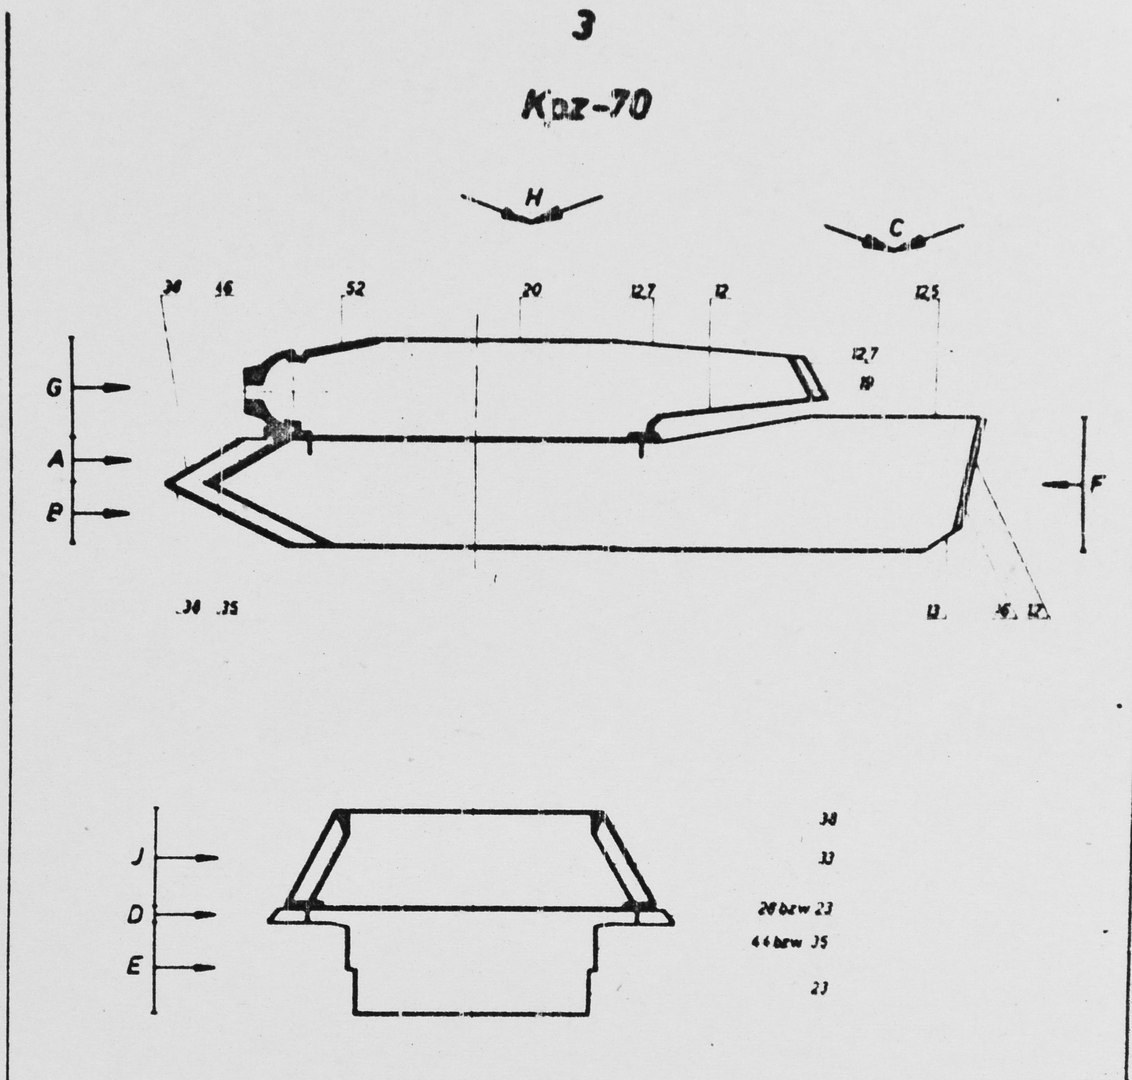 Mbt70 Kpz70 Armor Speculation Any Source For This